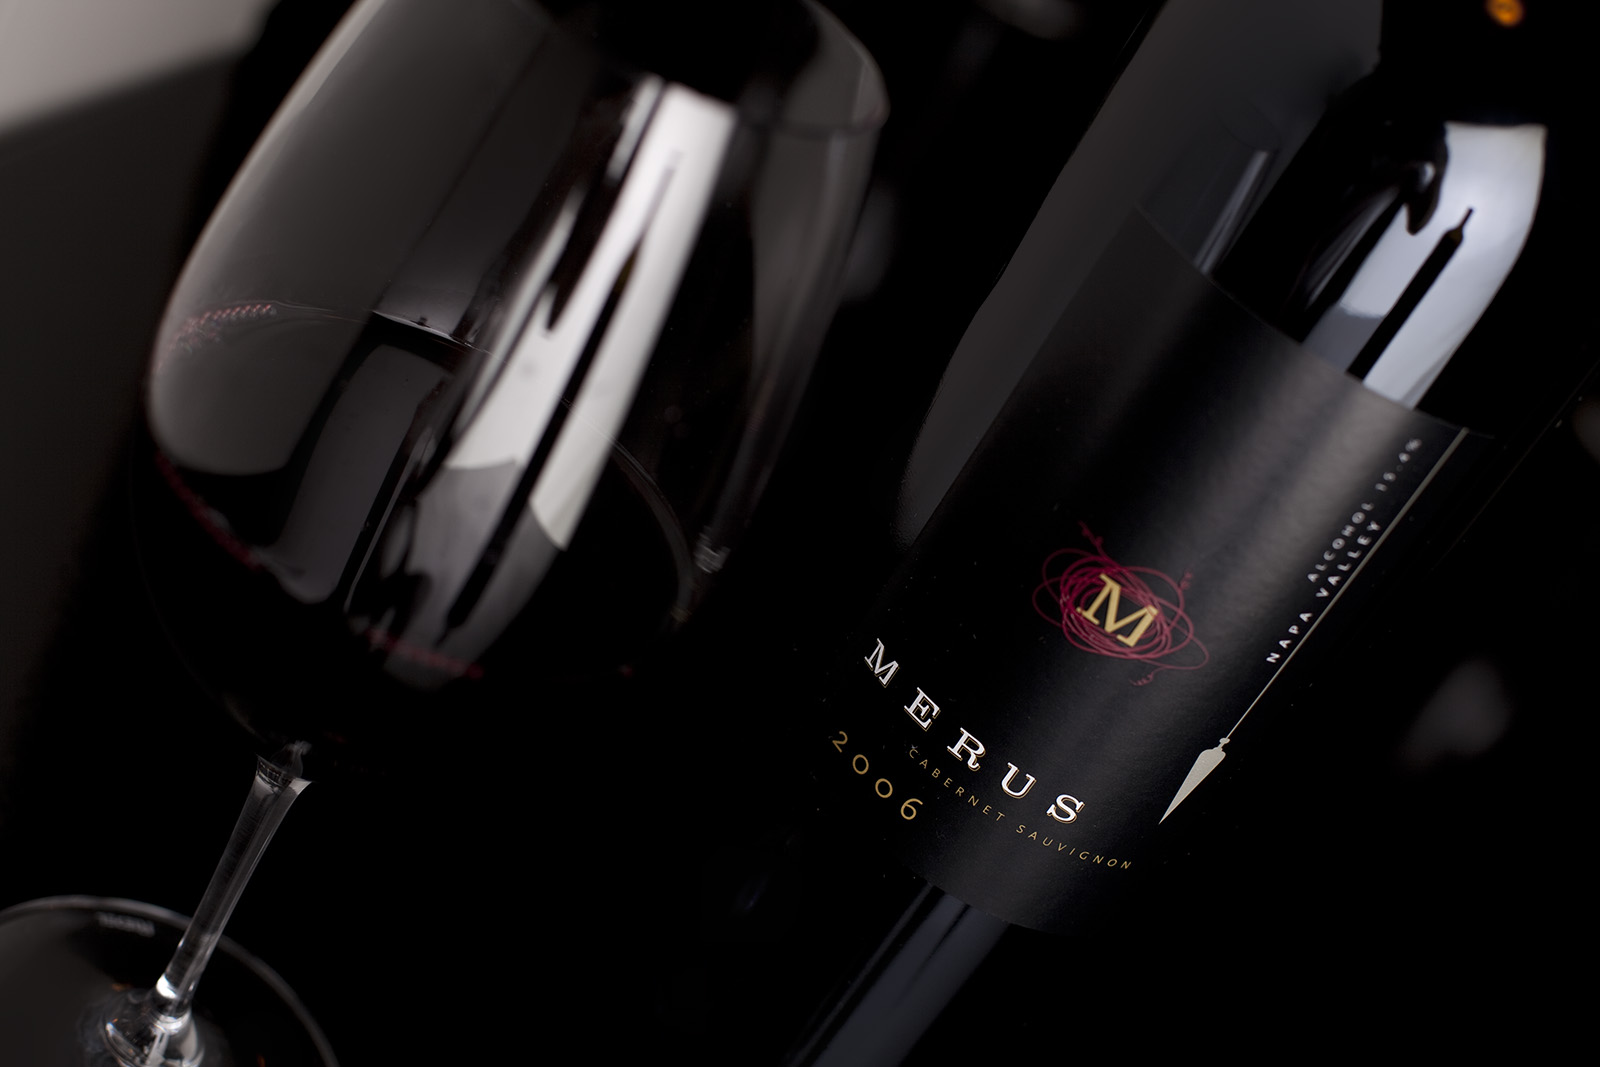 Merus Winery Product Shot. Saint Helena CA